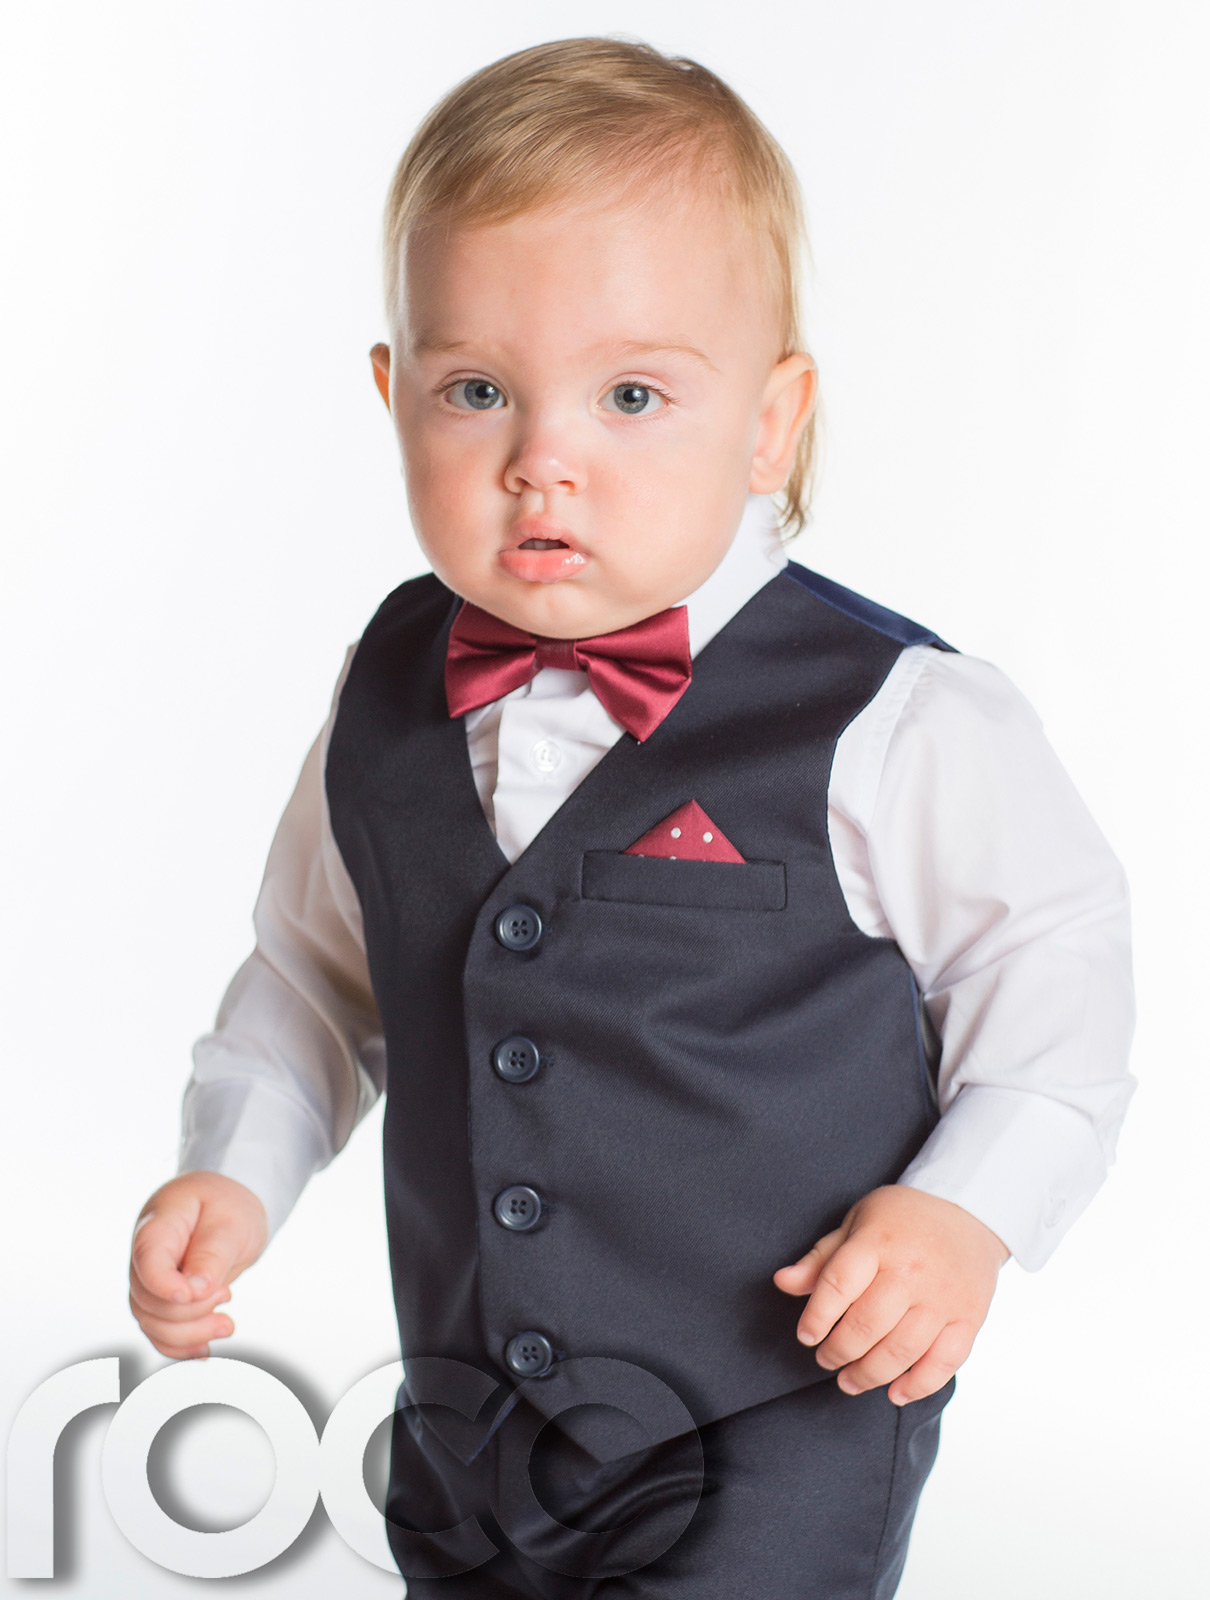 Angel size 3t Boys Toddler Tuxedo Black Suit with Bow Tie BABY Size 3T (1) Sold by nikgold. $ Angel Size 3T Boys Toddler White Tuxedo Suit with Tail BABY Size 3T. Sold by nikgold. $ Angel Baby Boys Toddler Tuxedo Black Suit with Bow Tie Size Medium / M / Months.